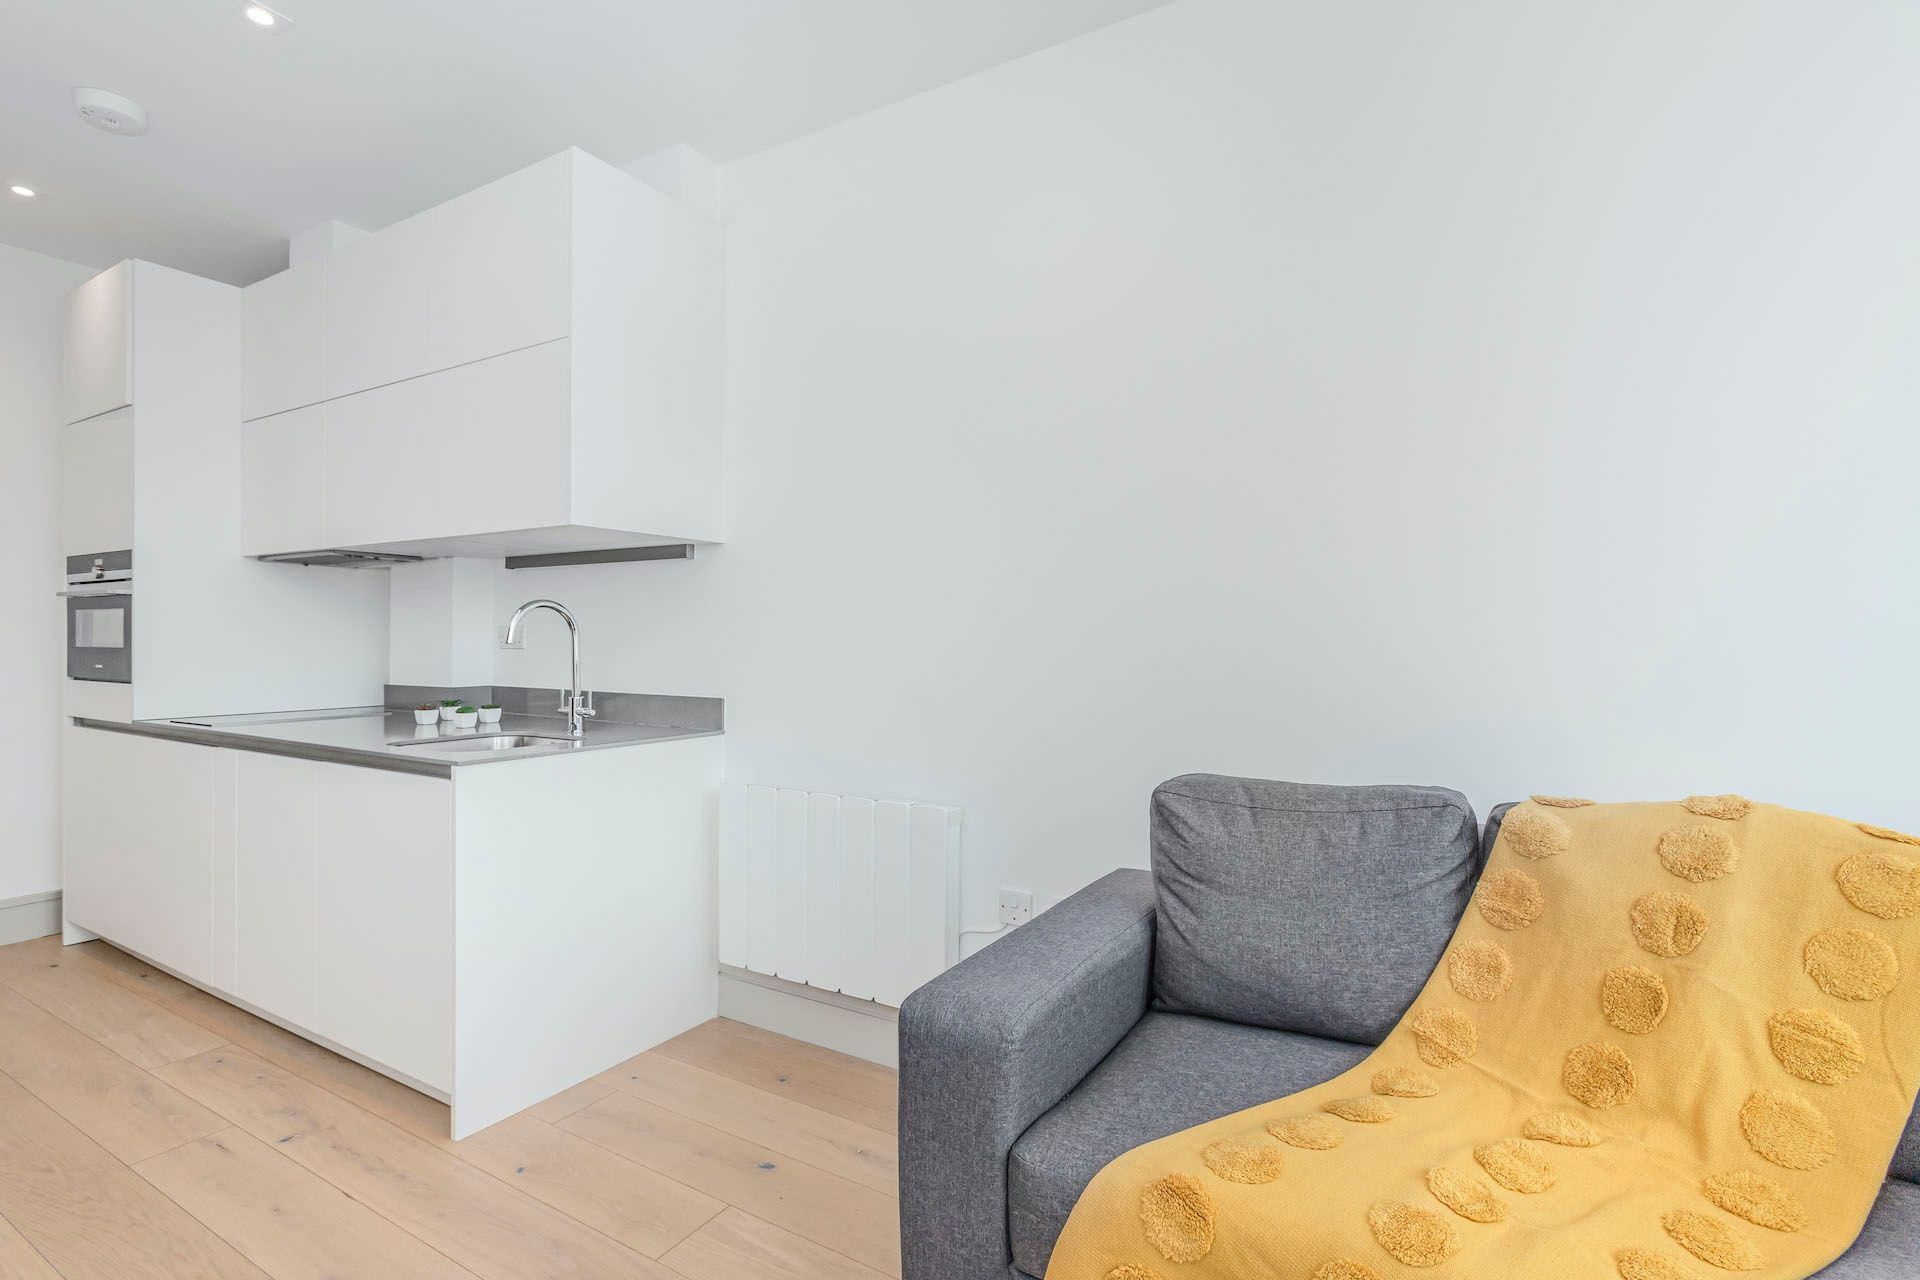 1 Bedroom apartment to rent in London BRO-BH-0021